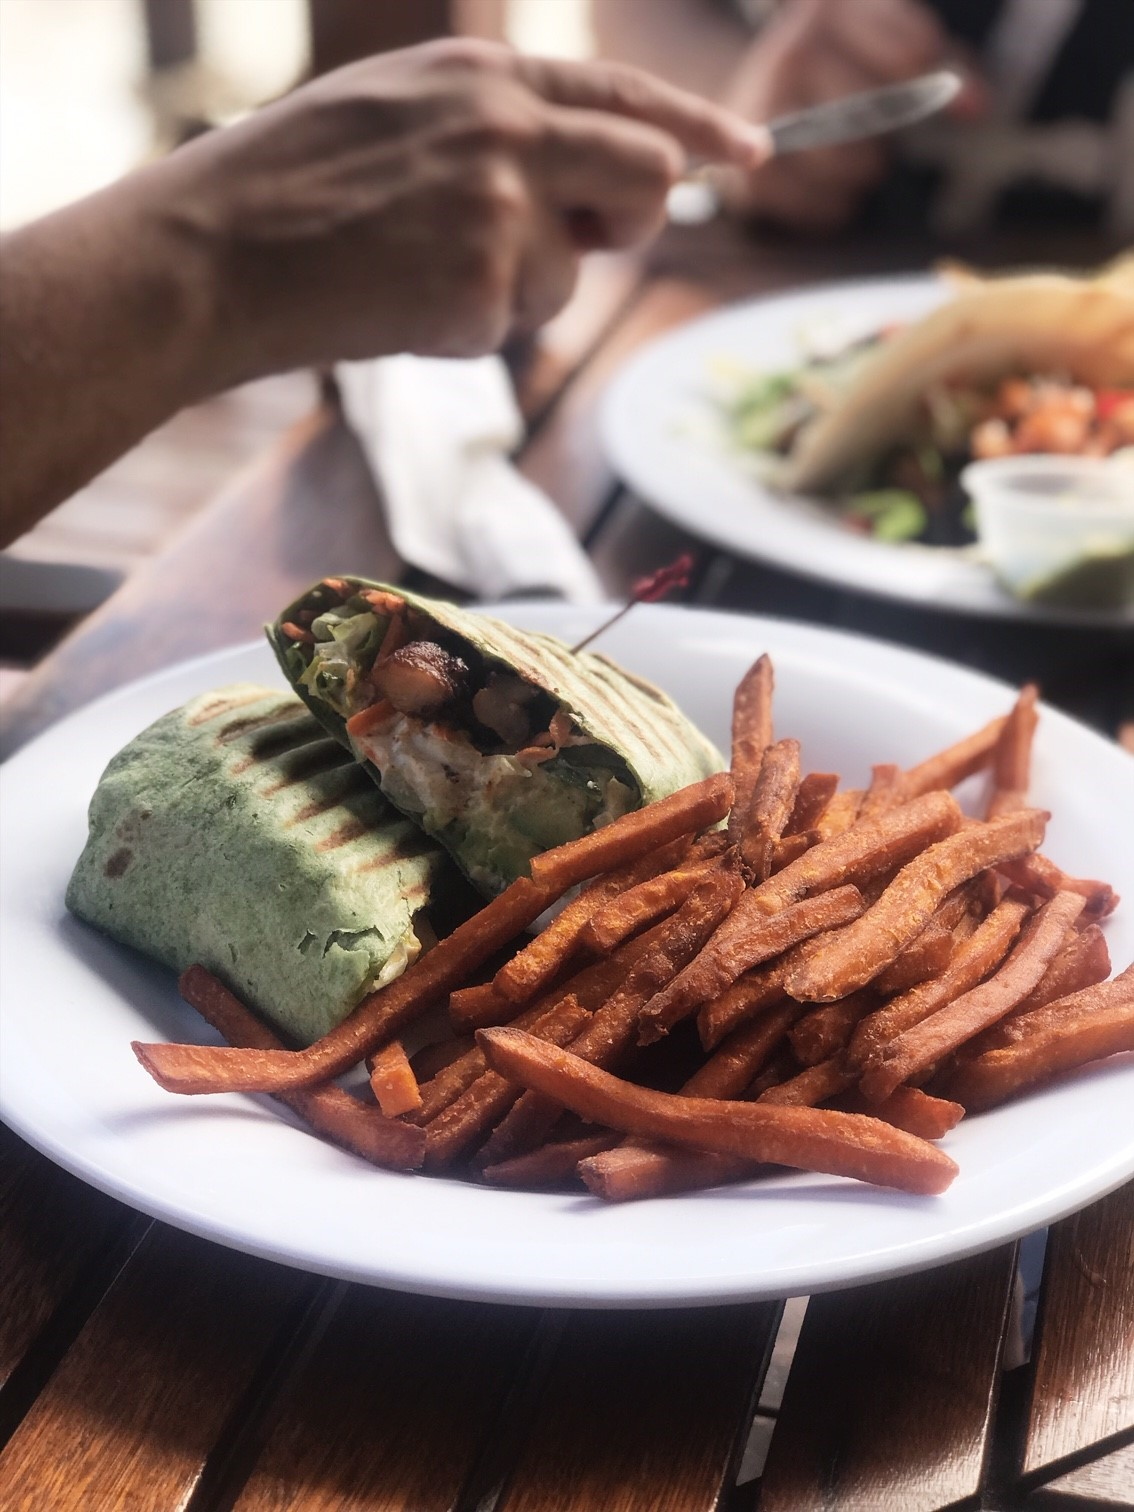 Where to eat in the BVI? The British Virgin Islands Restaurant Guide